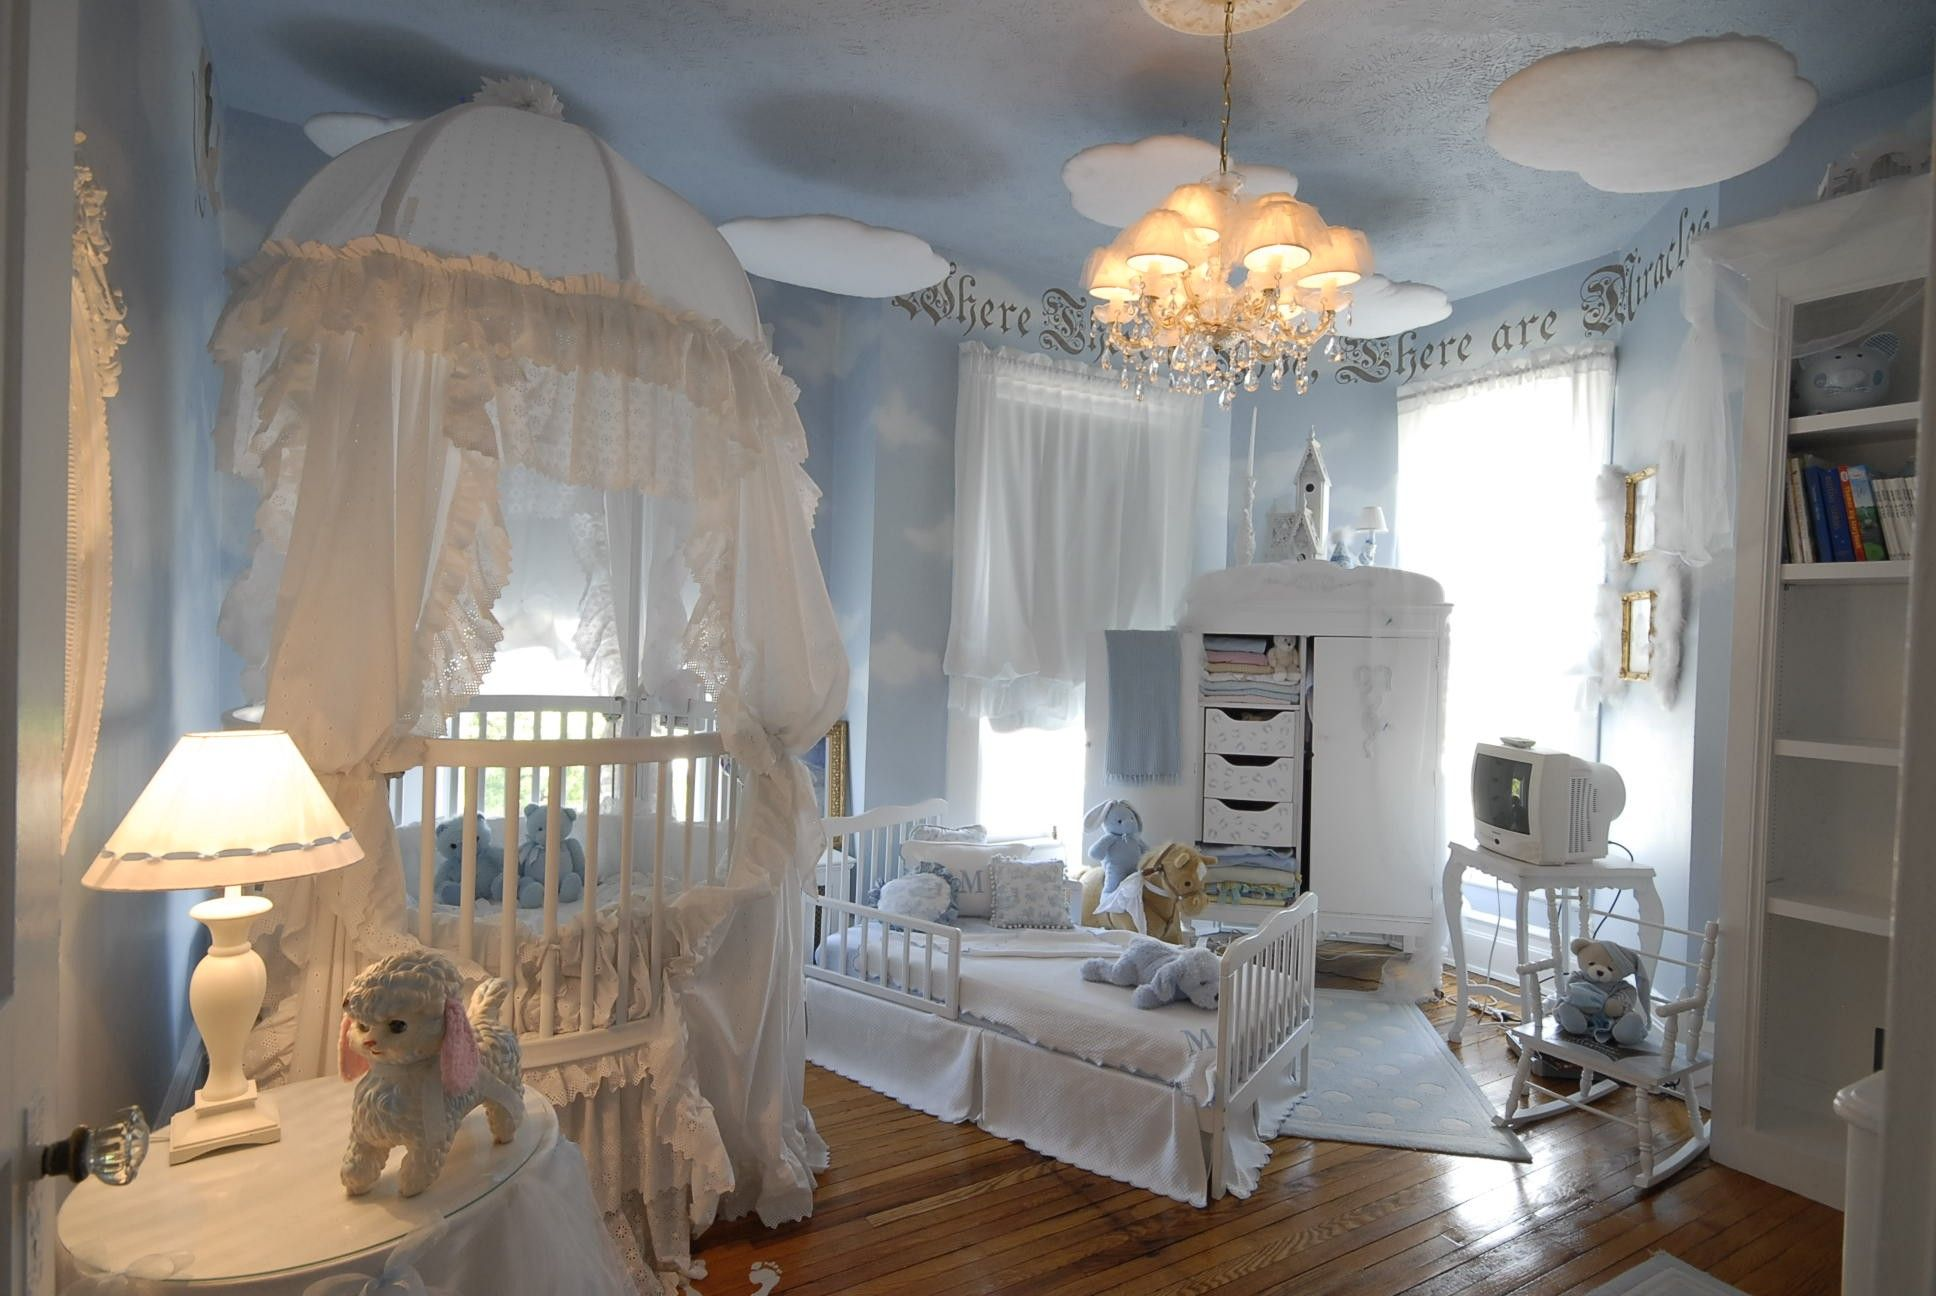 Kid Bedroom Ideas And Baby Bedroom Interior Design With White Stained Wooden Canopy Crib With White Lace Curtain Combi Luxury Nursery Baby Room Decor Girl Room